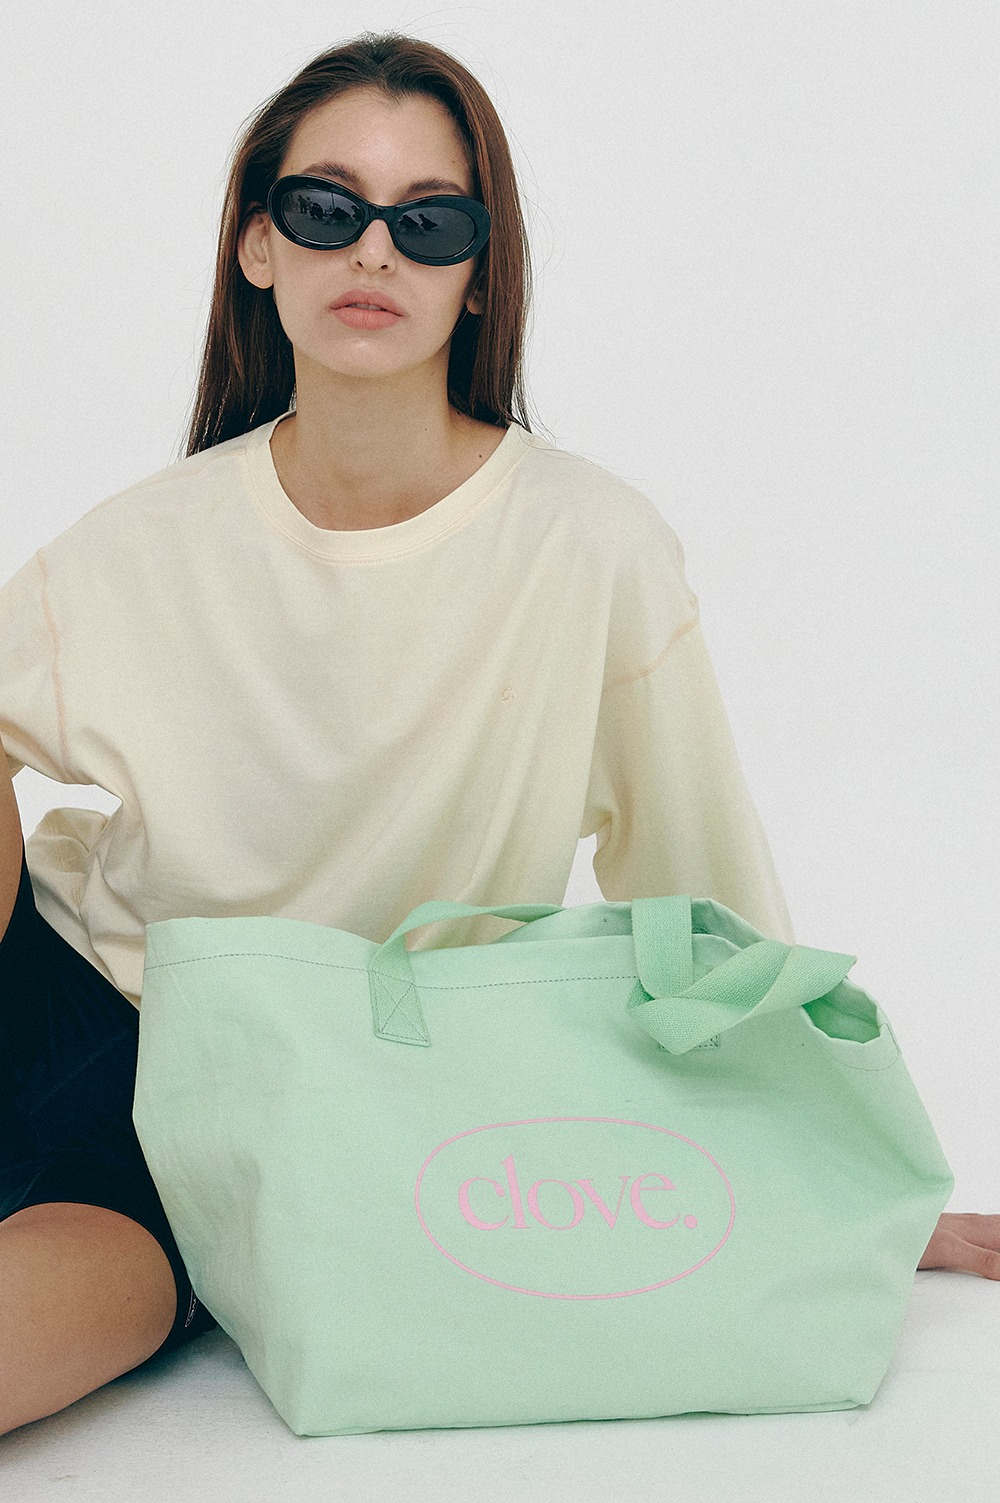 clove - [5/24(월) 예약배송][SS21 clove] Logo Cotton Totebag Mint